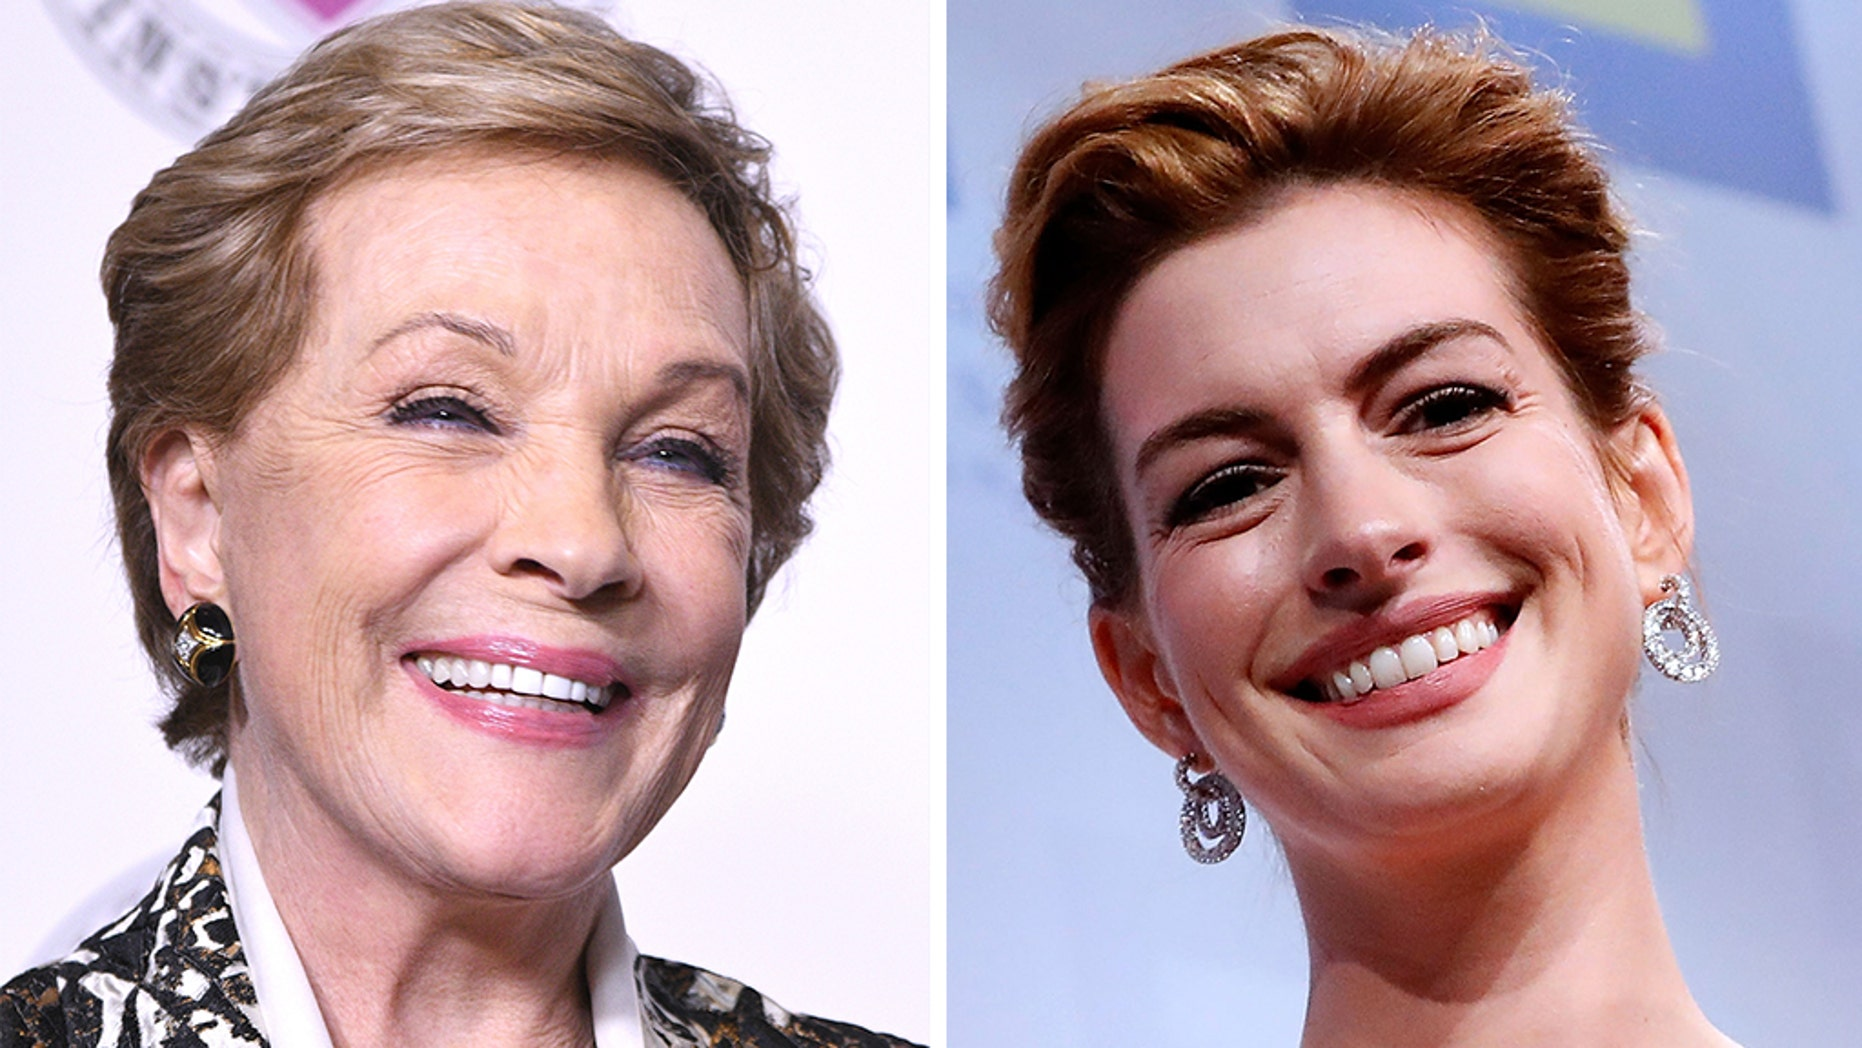 """Anne Hathaway (right) wished Julie Andrews, her co-star from """"The Princess Diaries,"""" a happy birthday on Instagram Monday."""